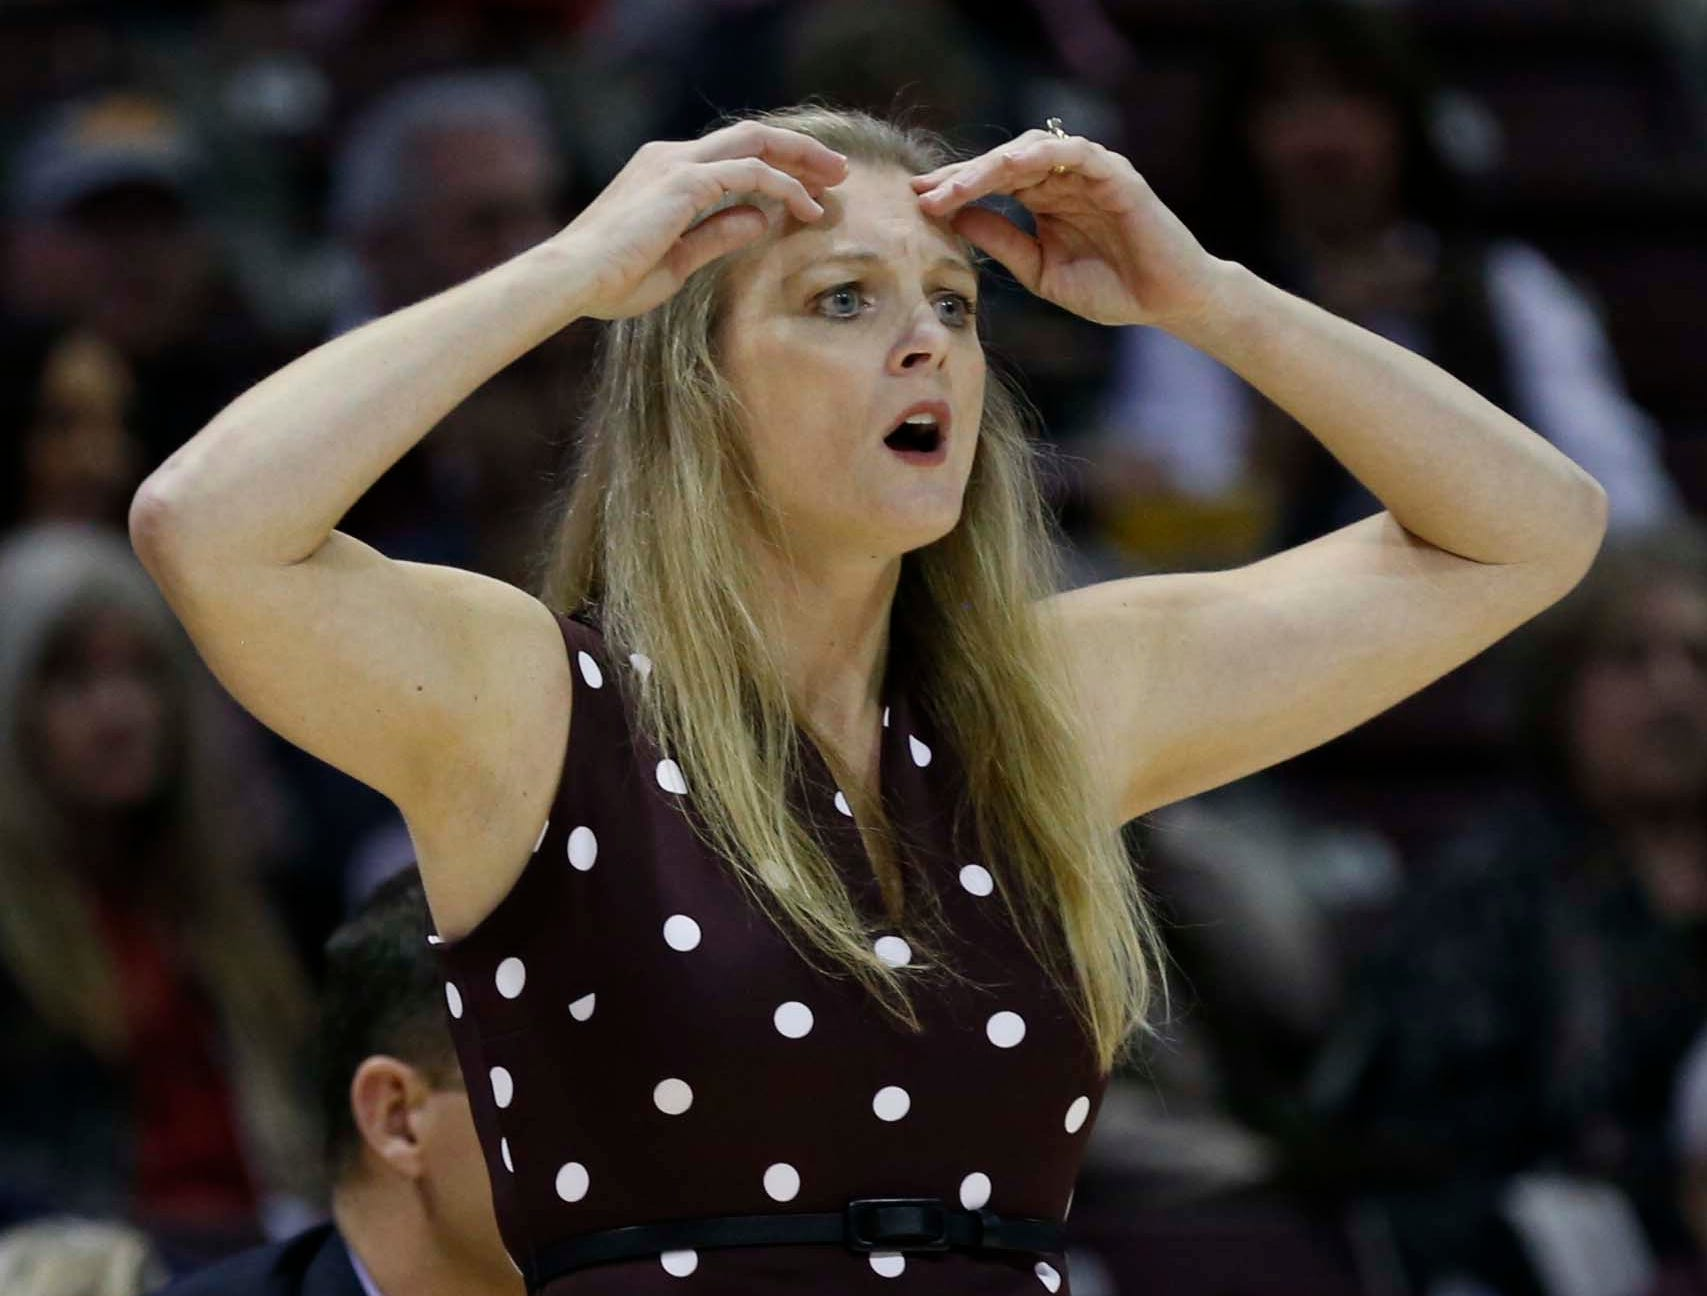 The Missouri State Lady Bears against Ball State University at JQH Arena in Springfield on November 17, 2018. Coach Kellie Harper reacts during the game.